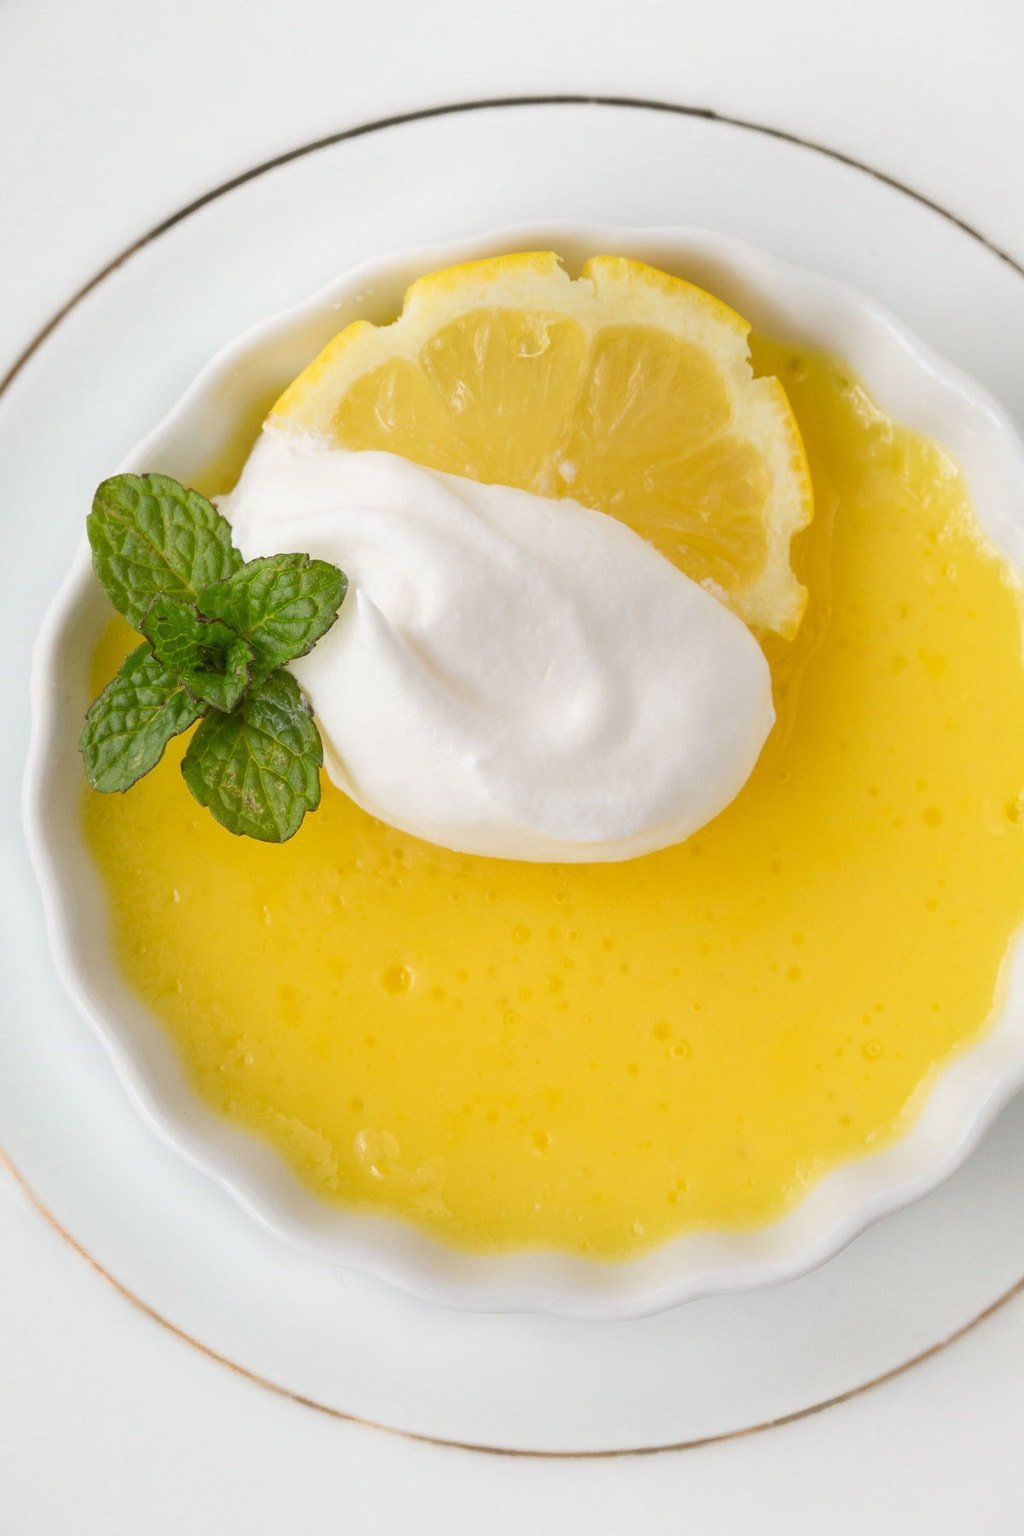 Overhead photo of a white dish of Lemon and White Chocolate Pots de Crème garnished with mint, a lemon slice and whipped cream.